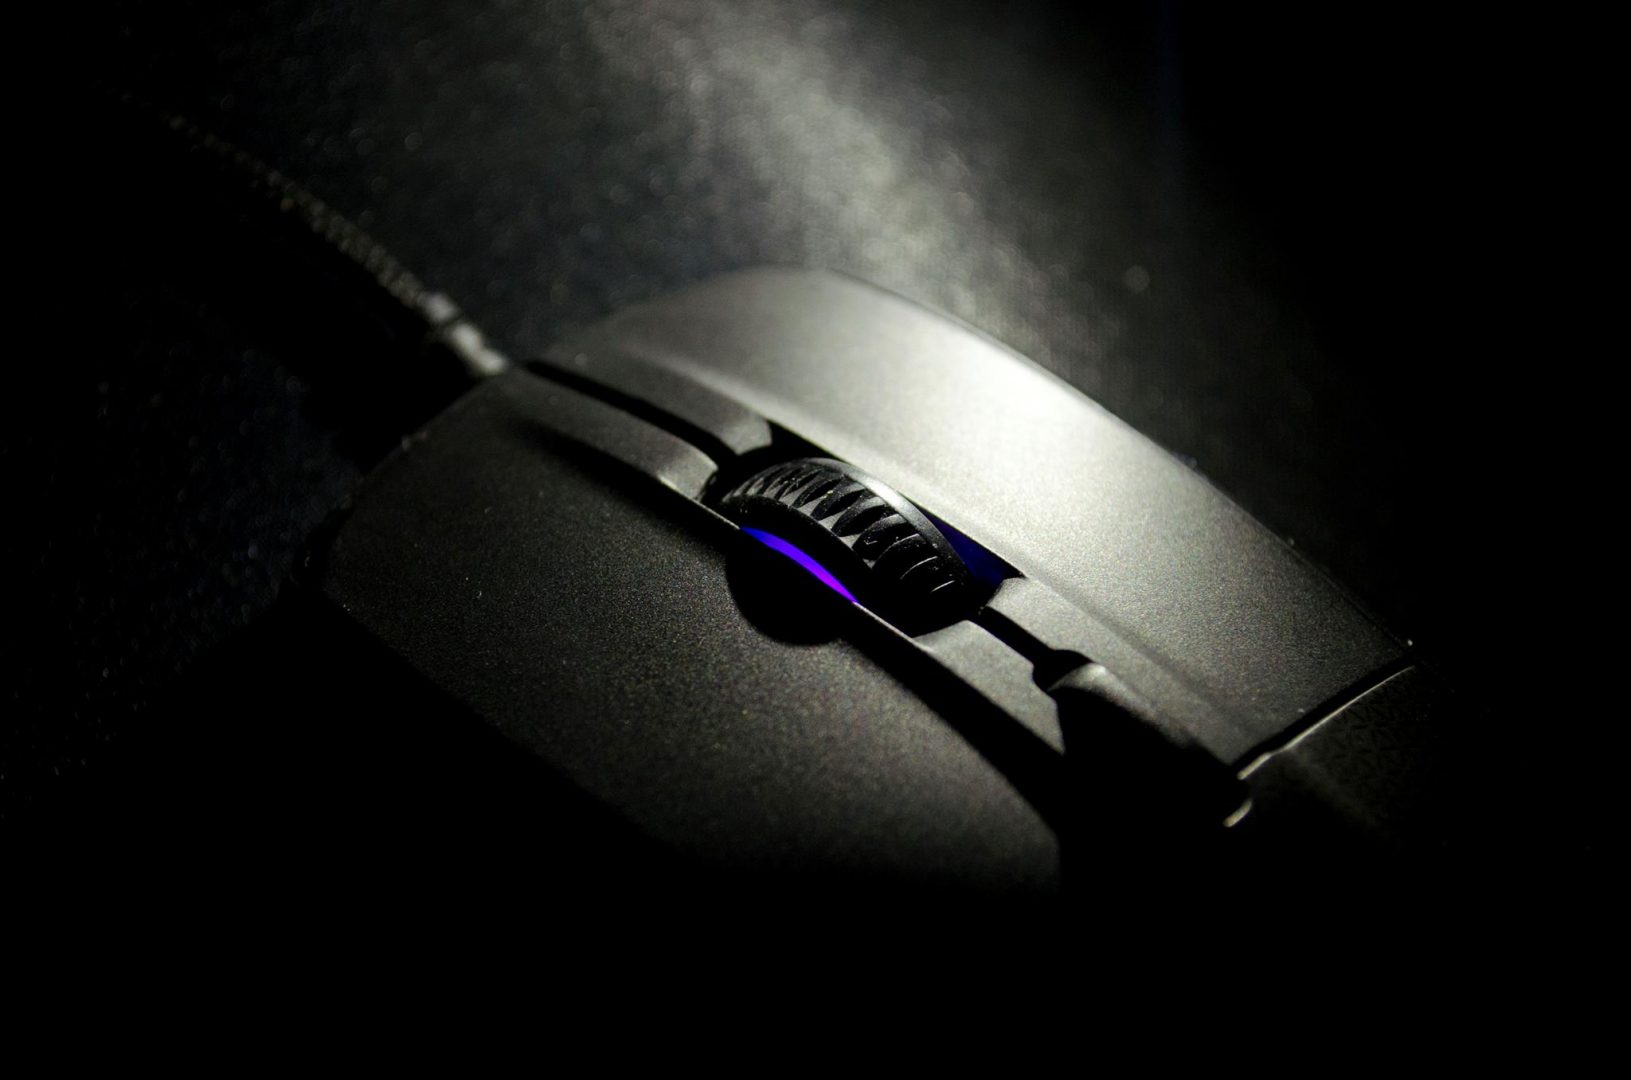 steelseries rival 700 gaming mouse_15